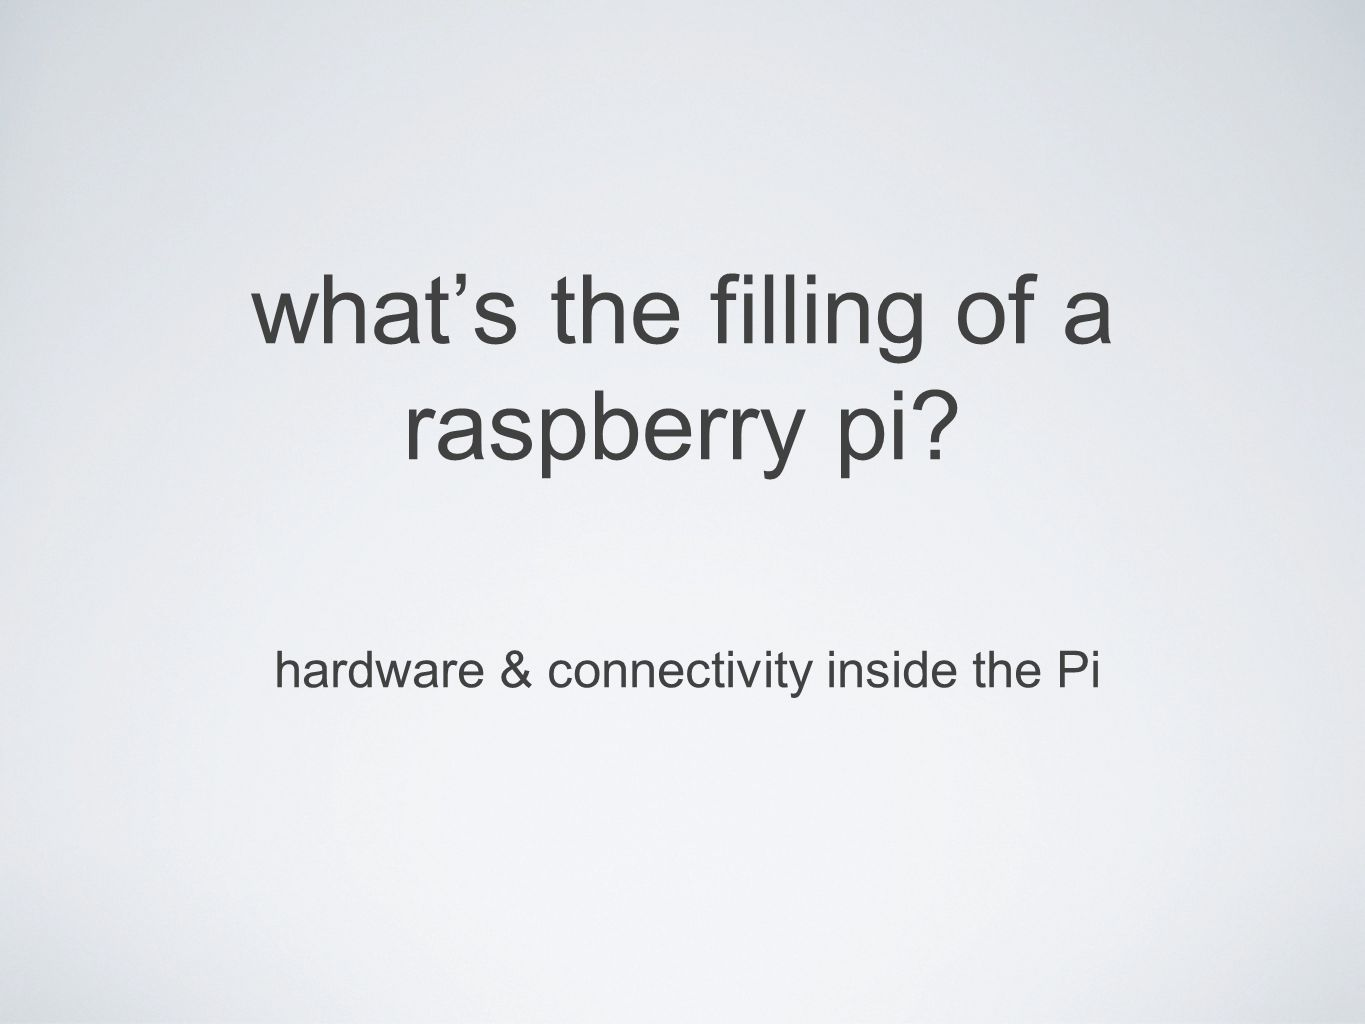 whats the filling of a raspberry pi? hardware & connectivity inside the Pi